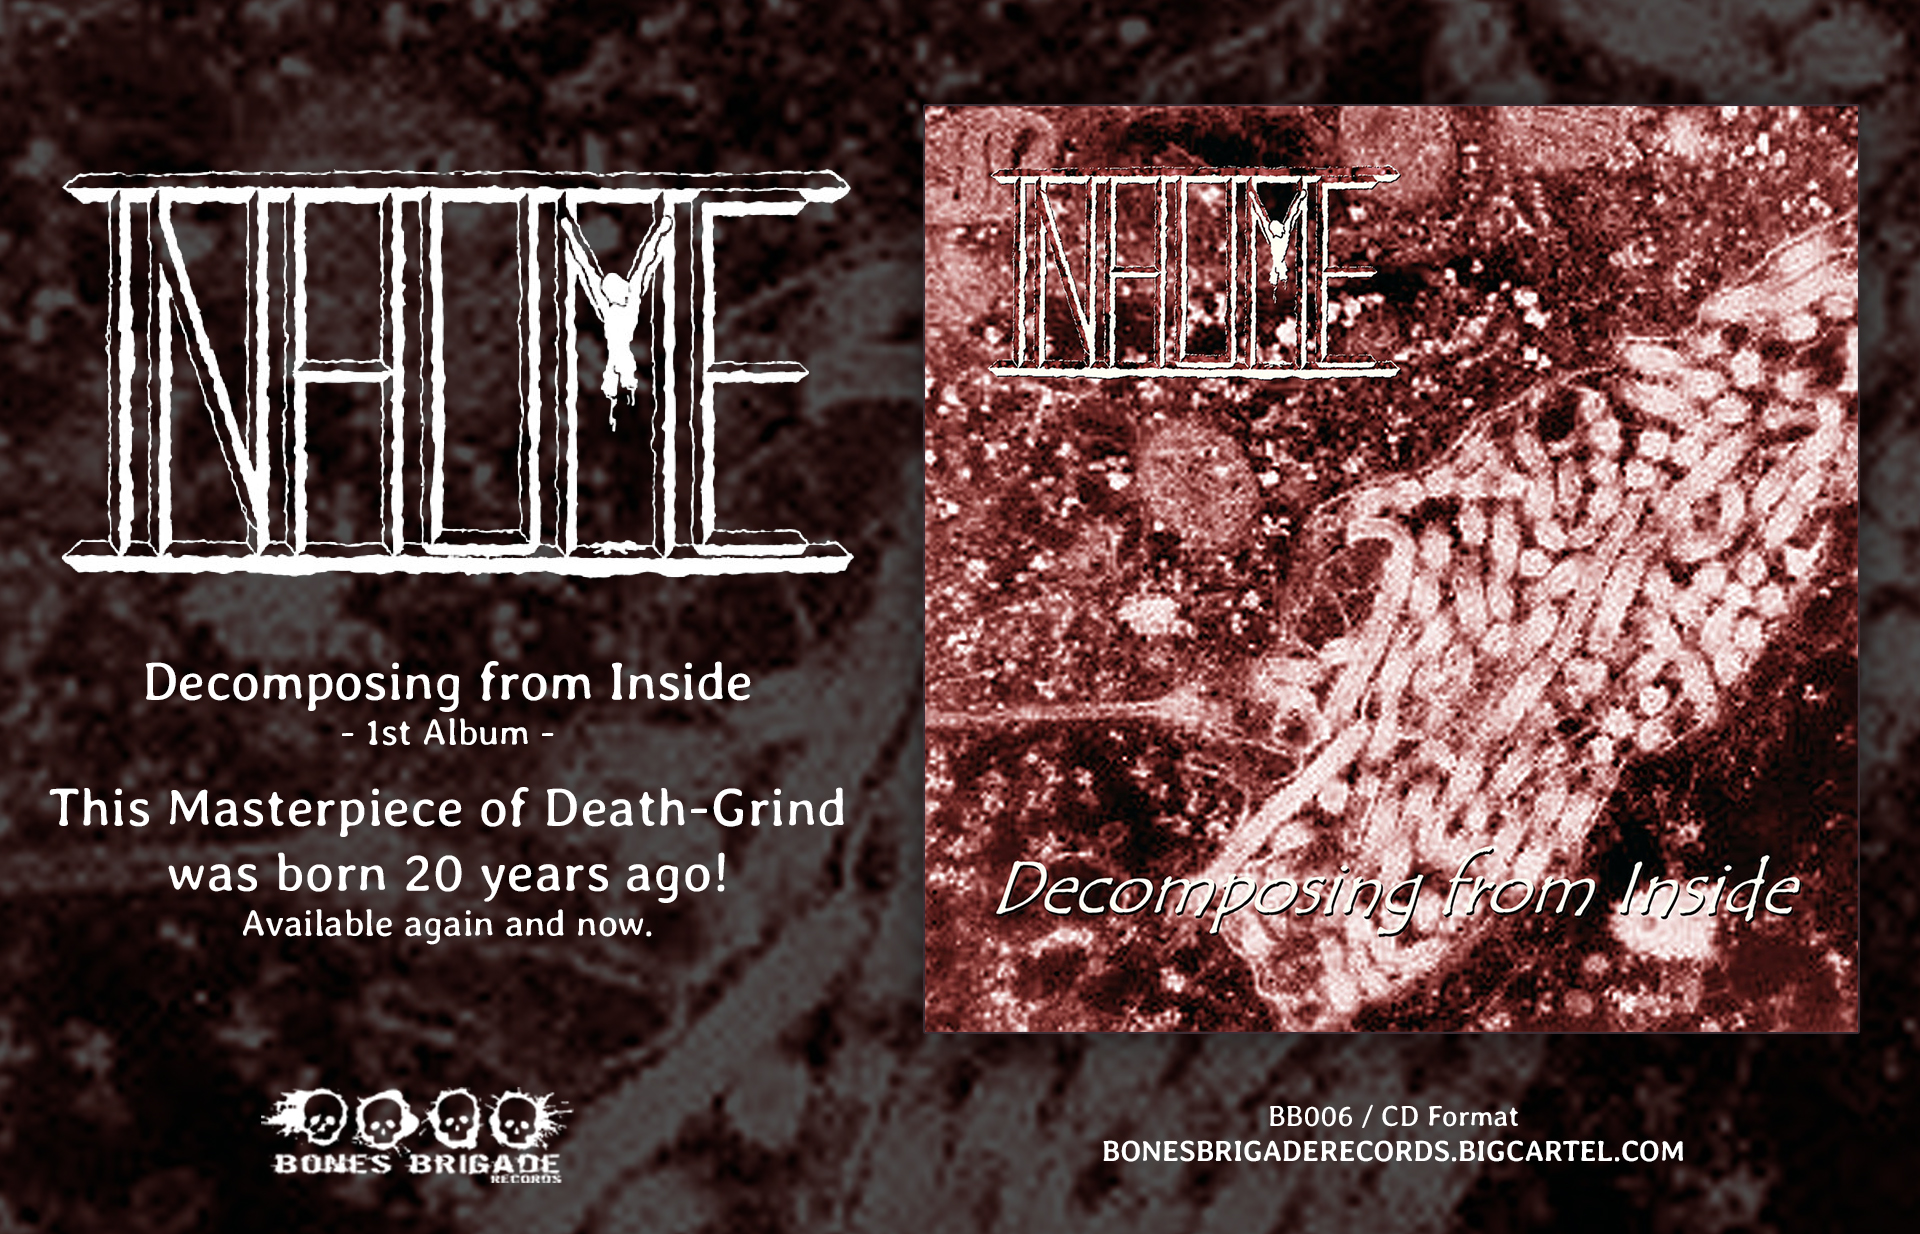 Inhume - Decomposing From Inside - CD Re-issue on Bones Brigade Records